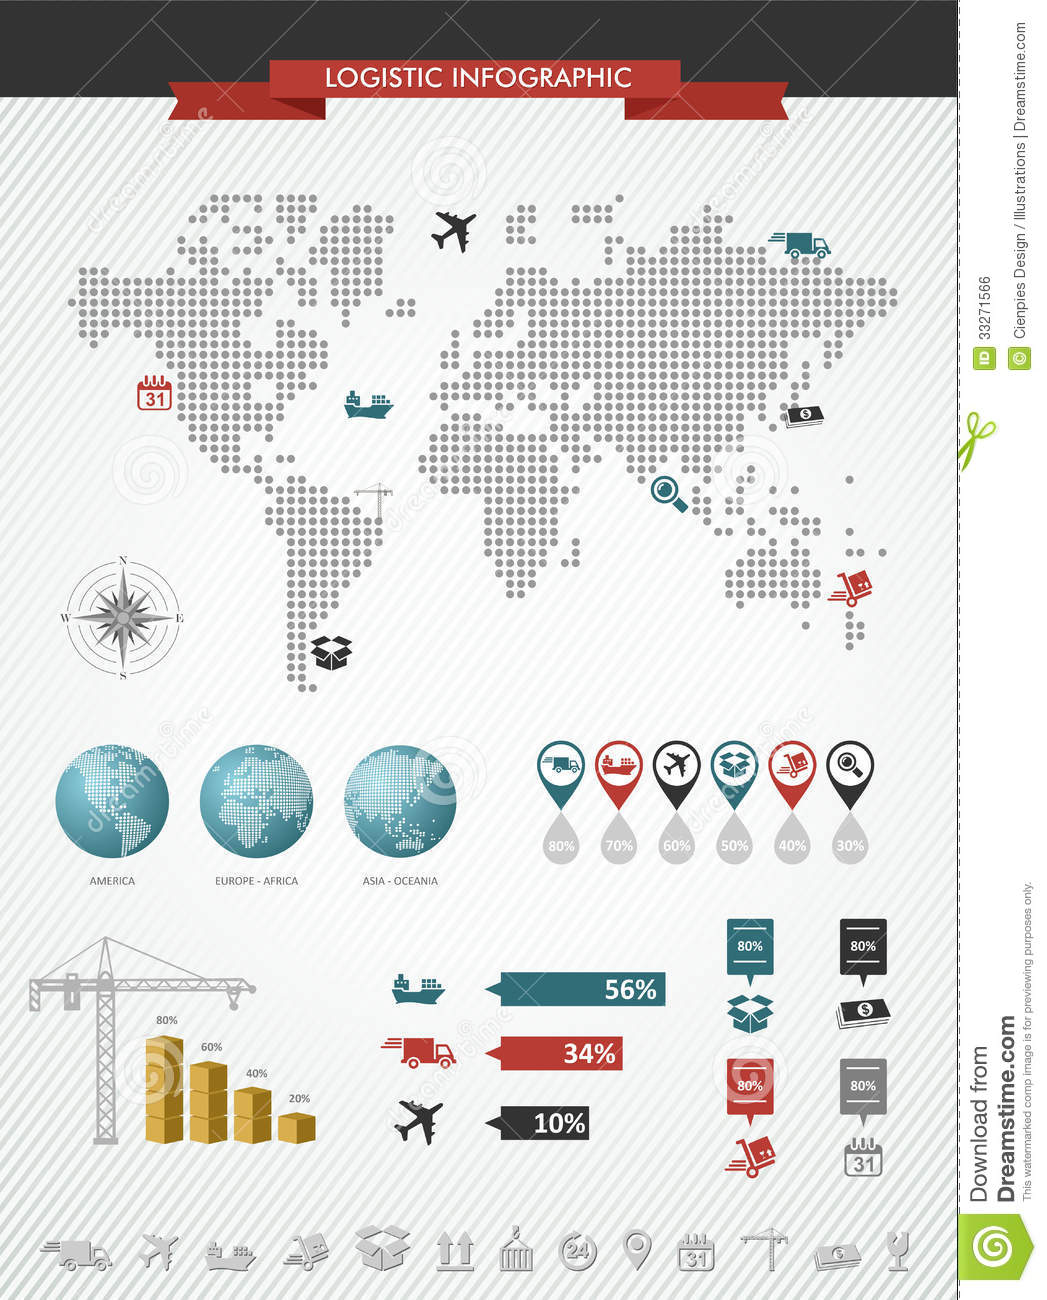 Shipping Logistic Infographic World Map Icons Set Stock Vector - Image: 33271566